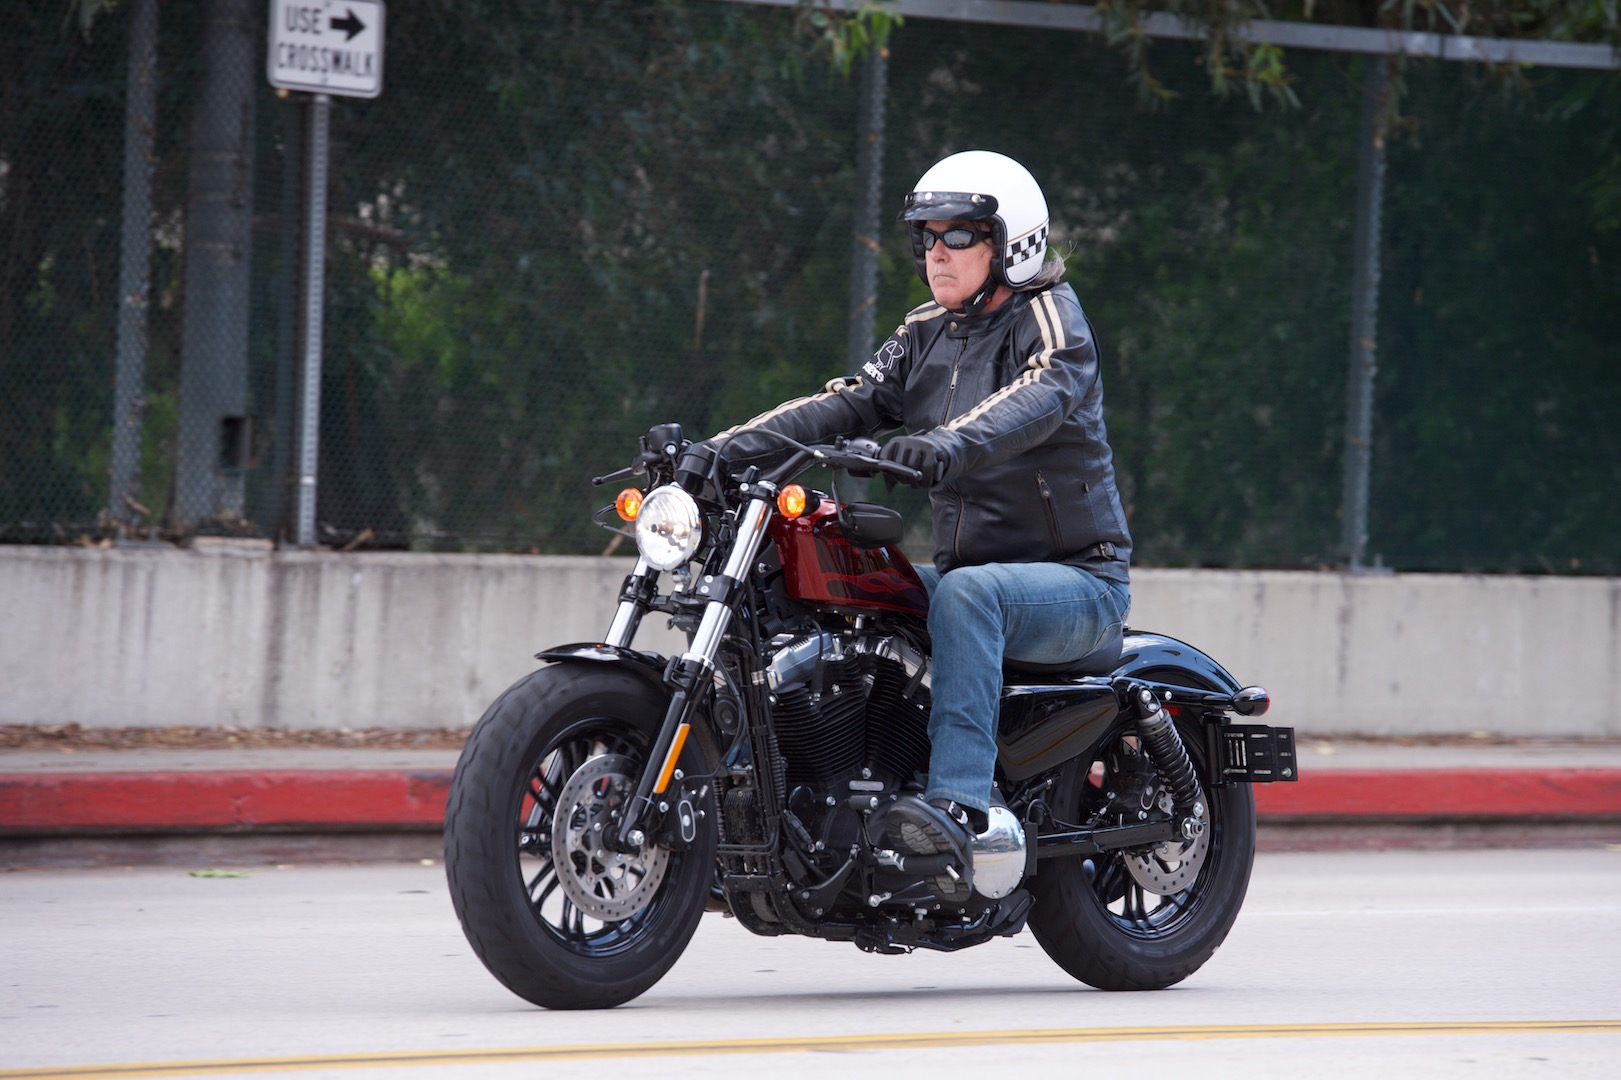 2017 Harley-Davidson Sportster Forty-Eight Review: Mid-Century Retro